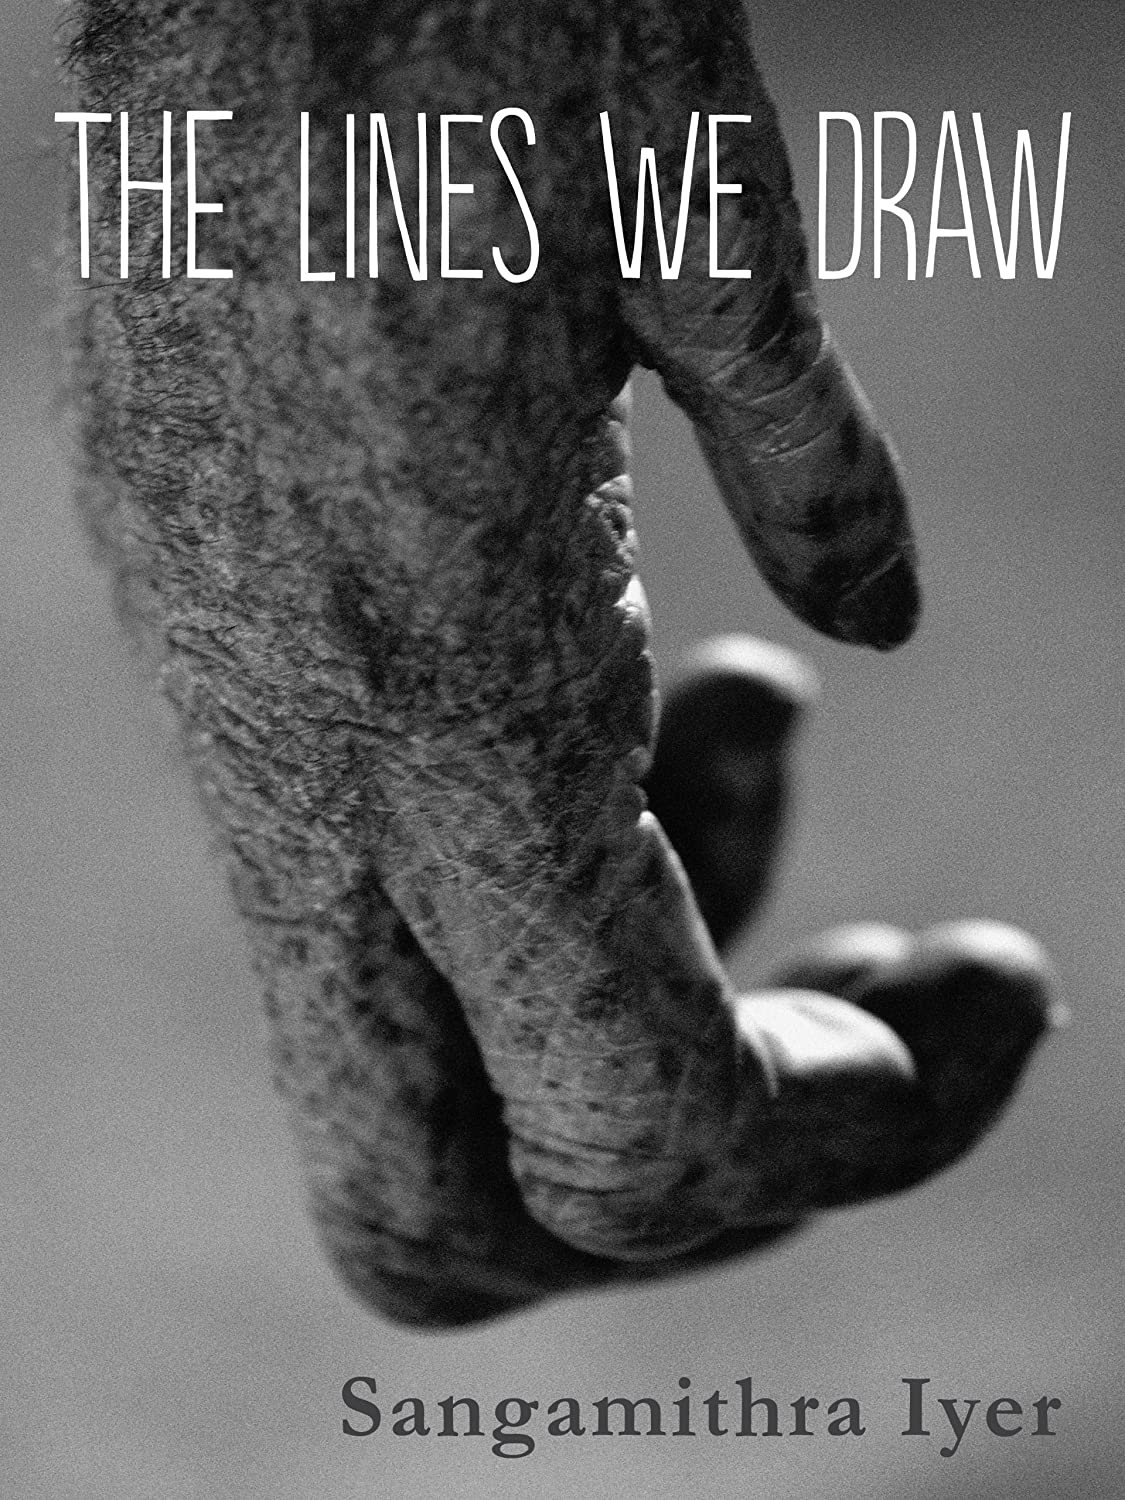 "I Am Beyond Excited To Announce That My Longform Nonfiction Narrative Story  €�the Lines We Draw"" Has Been Published As A Short Ebook By Hen Press,"